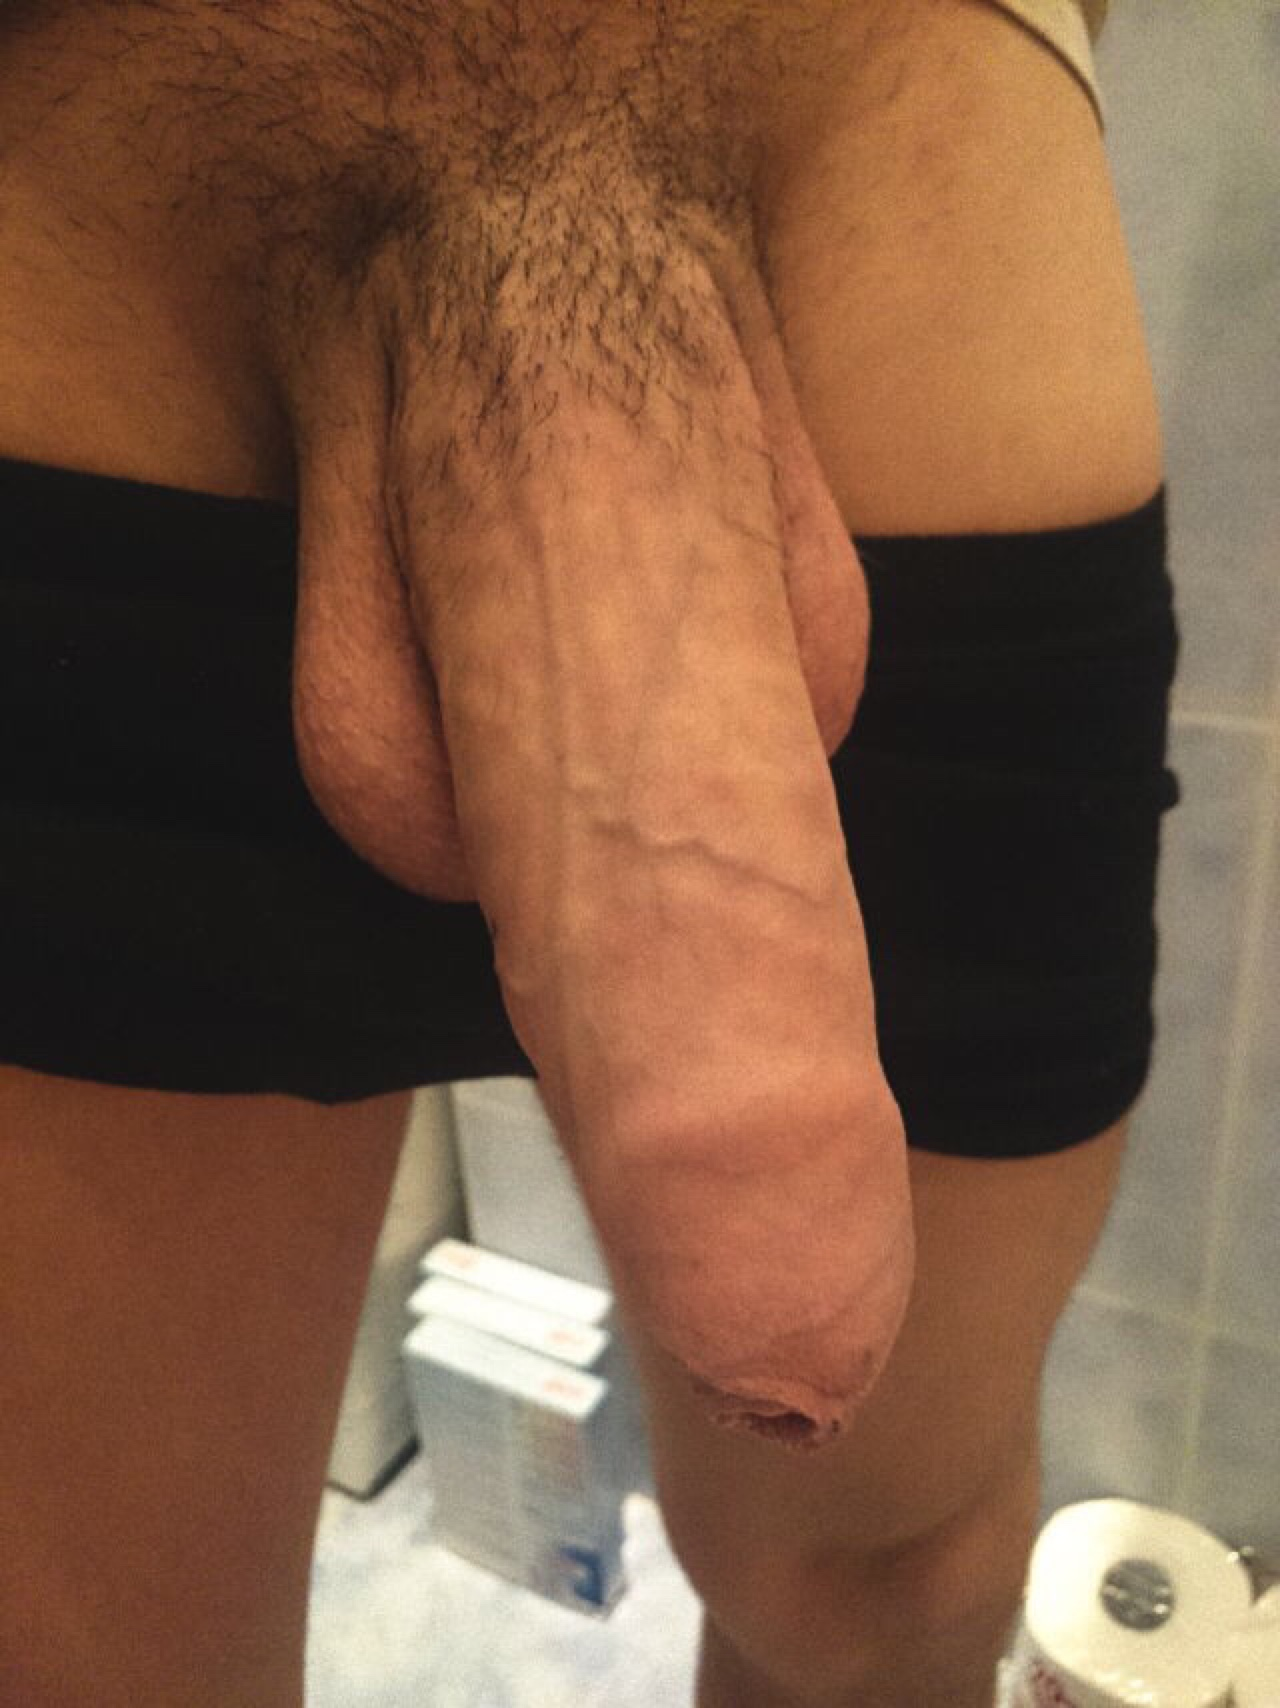 Huge thick and long uncut cock